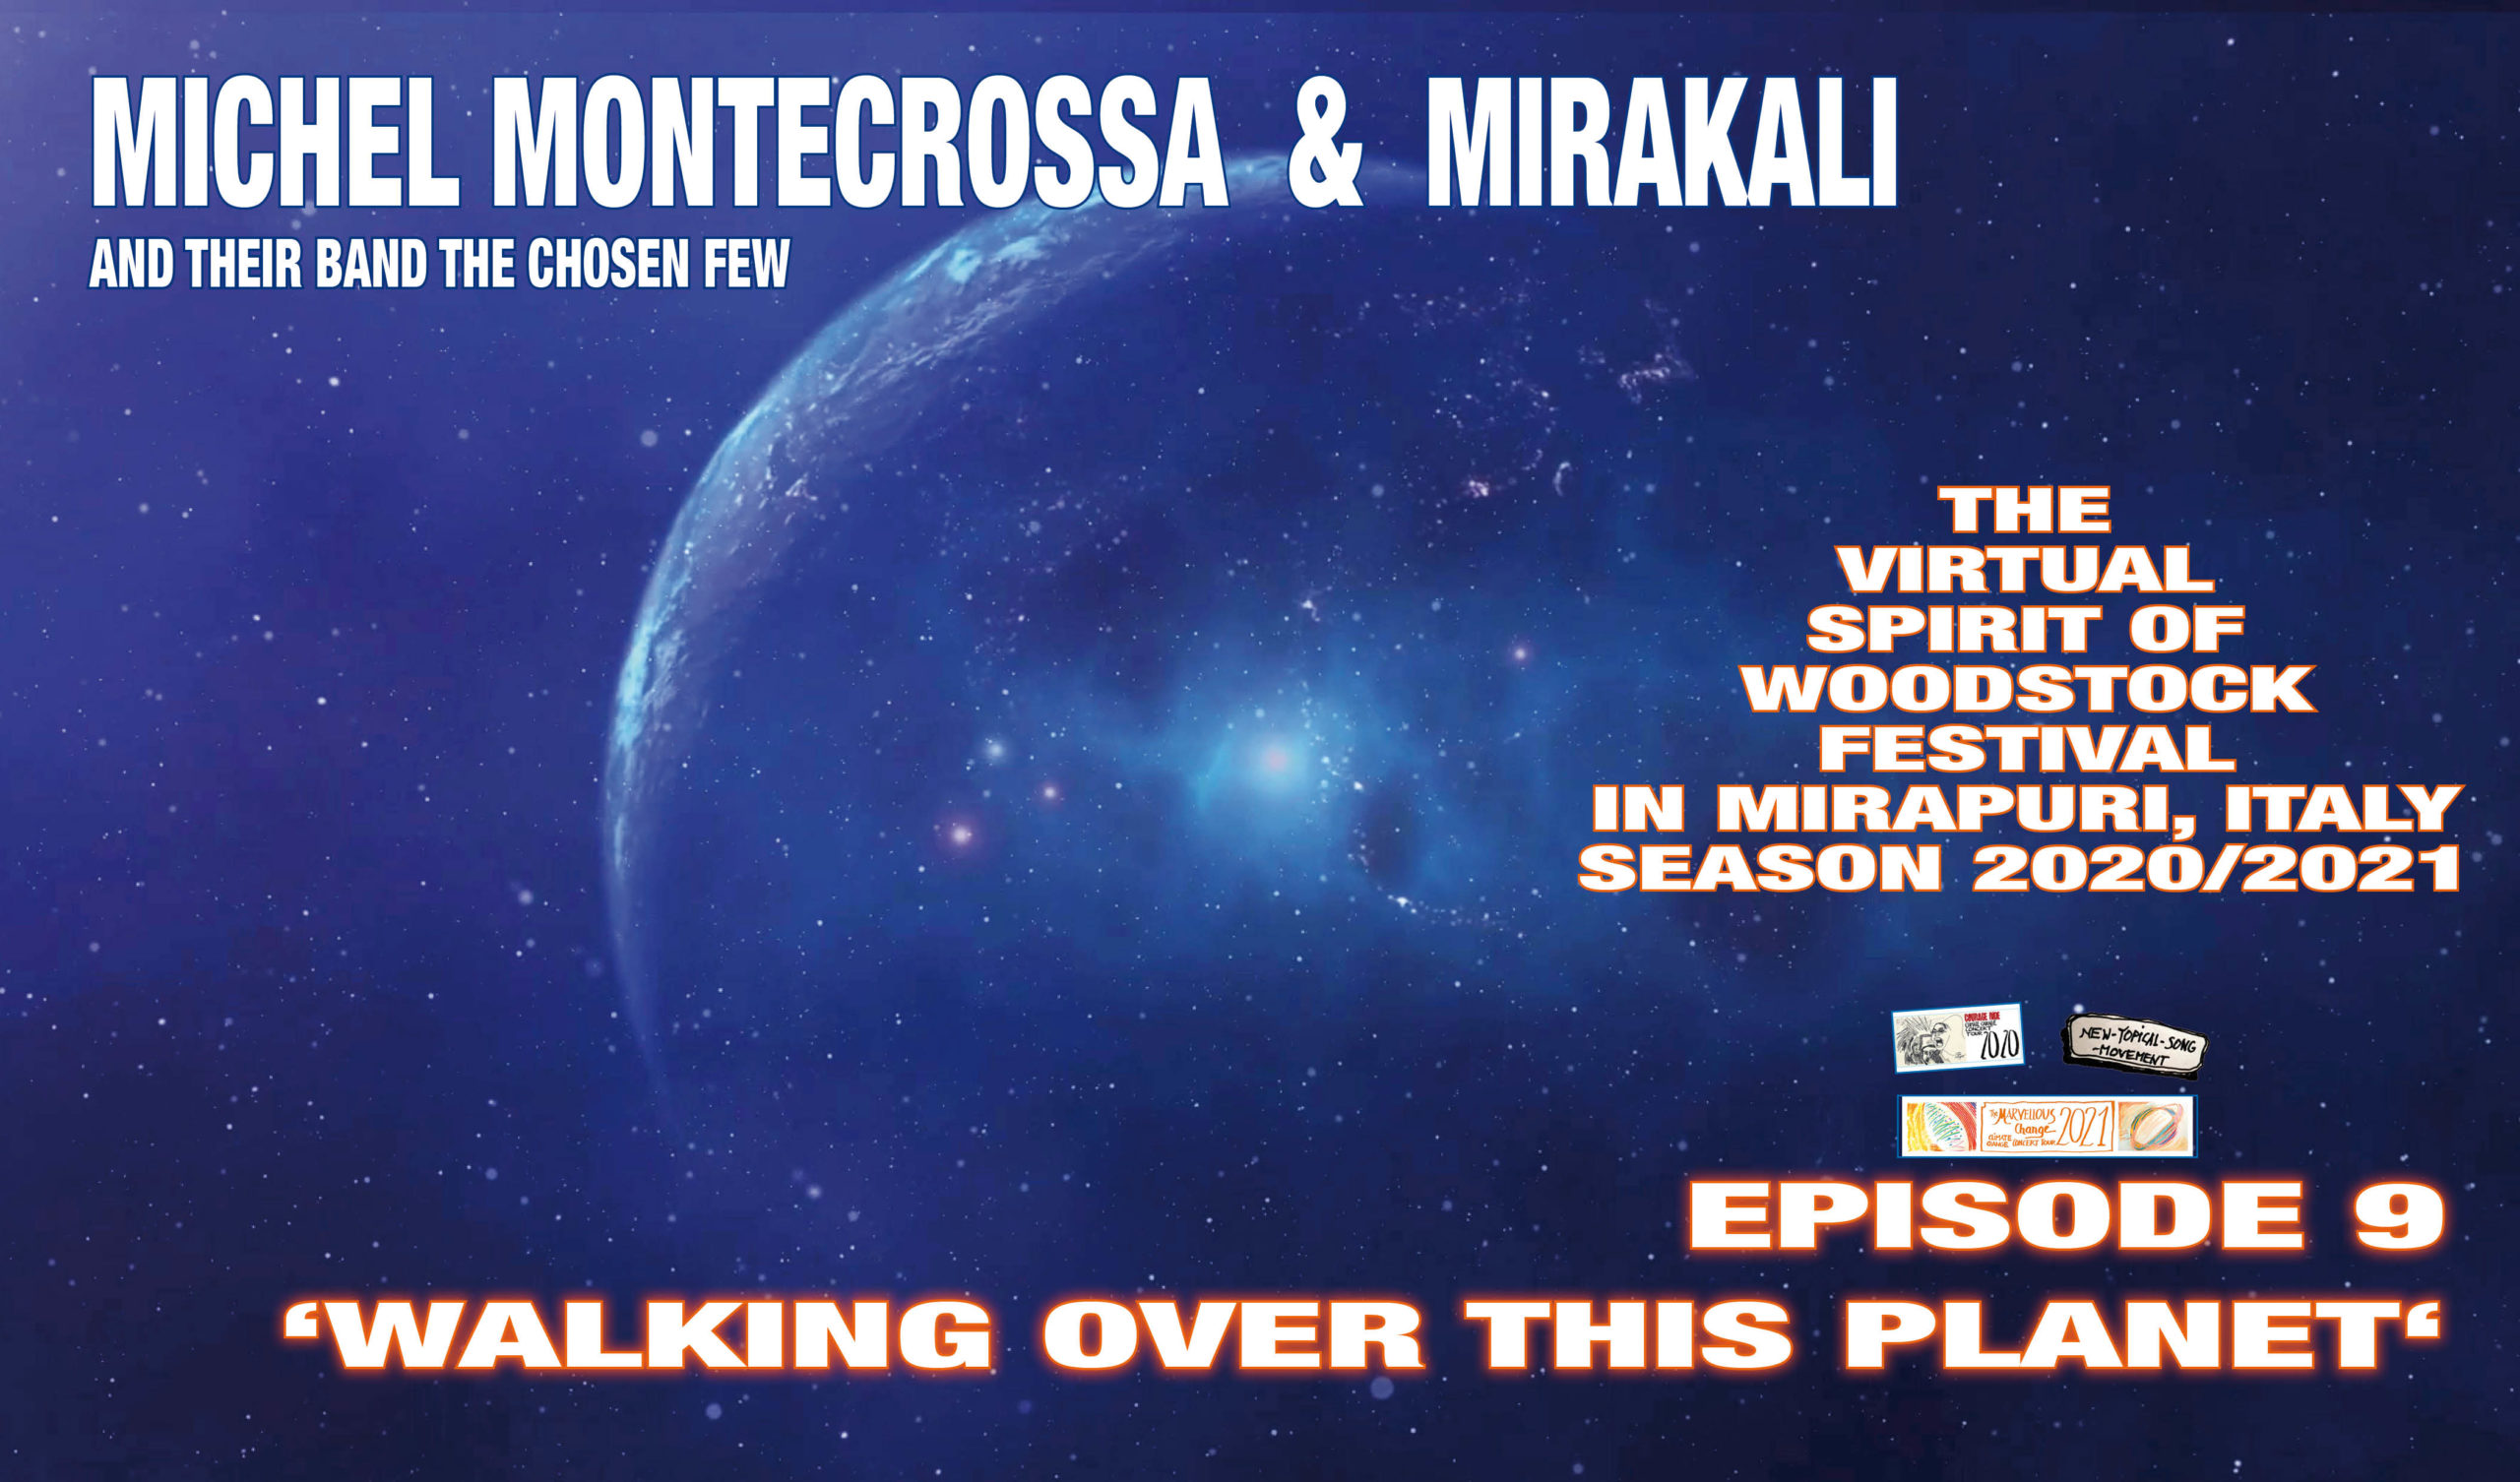 The Virtual Spirit of Woodstock Festival in Mirapuri, Italy Season 2020/2021 Episode 9 'Walking Over This Planet'